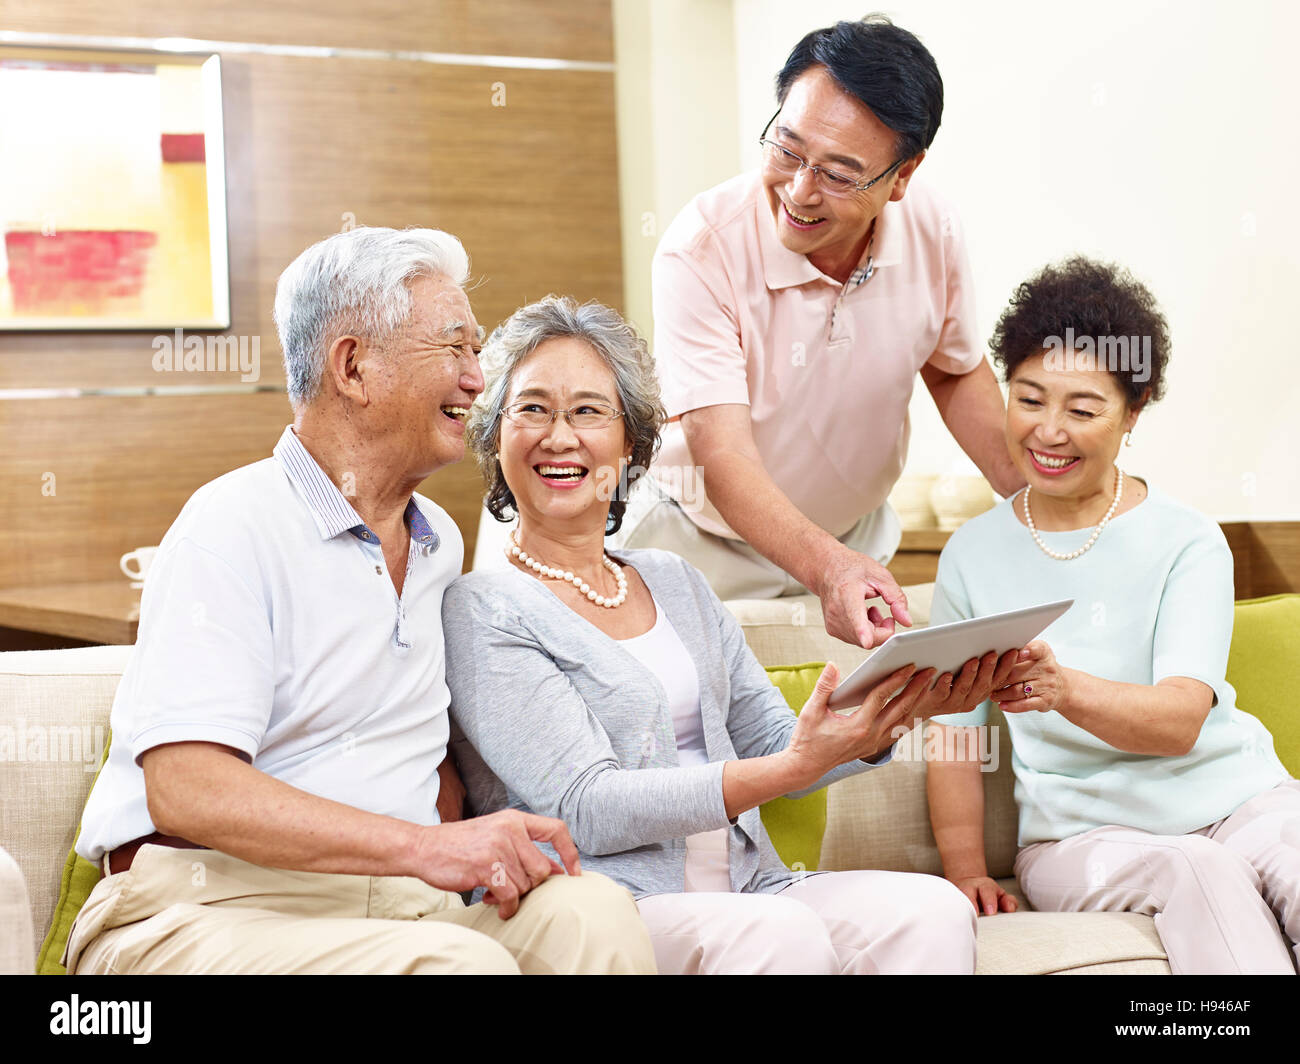 two active senior asian couples looking at tablet computer, happy and laughing - Stock Image